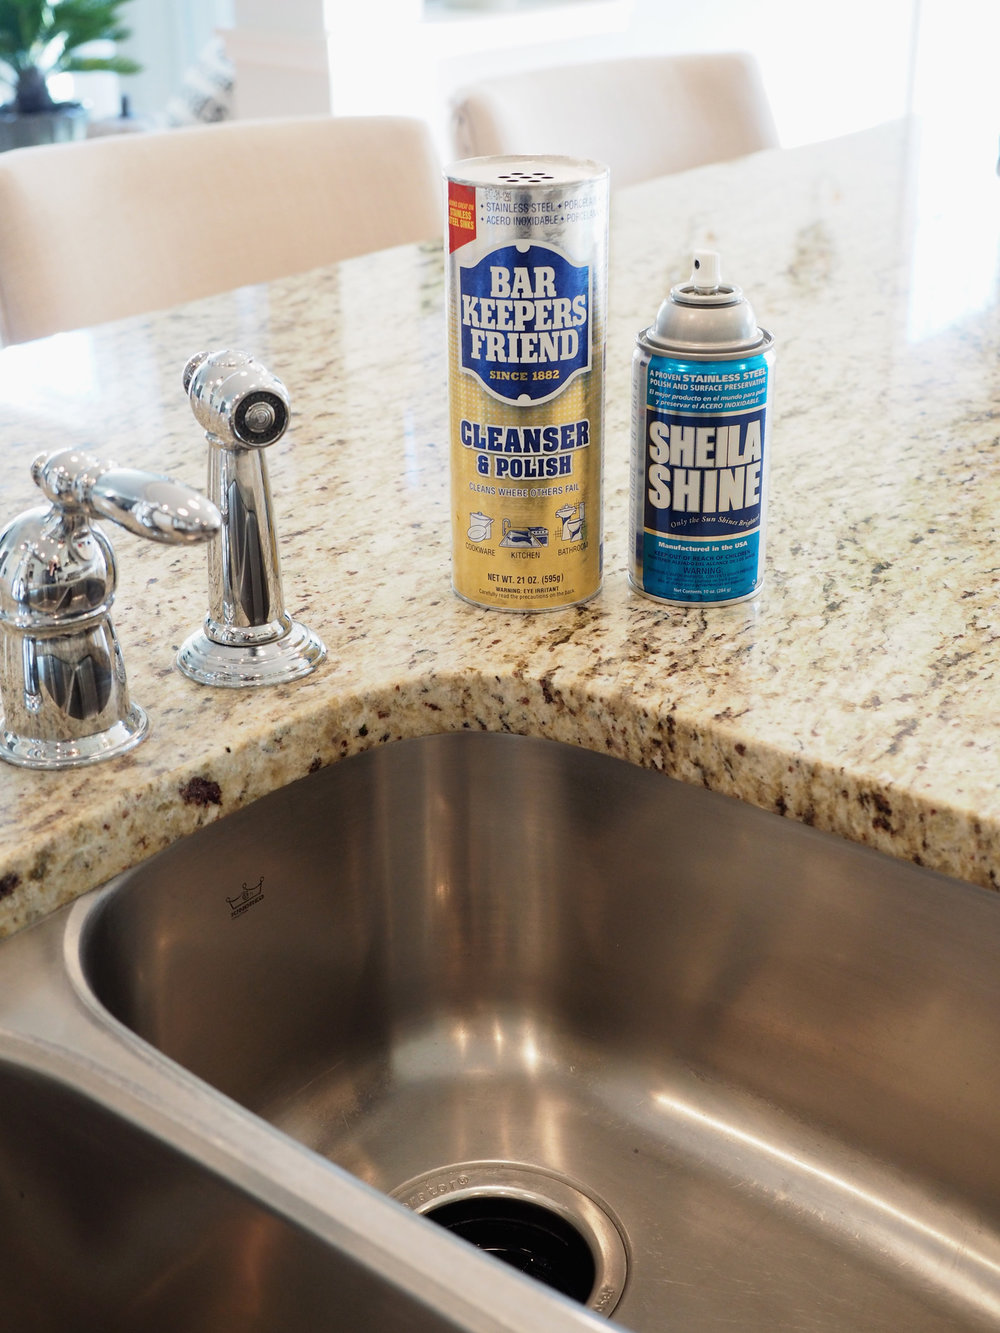 Next up ... Scrub that sink! Whether you have stainless or porcelain, Bar Keepers Friend is the one for the job! I use a light duty scrubbing sponge on my sink and cookware and the results are fantastic. If you have a stained porcelain sink, you really should try this product. After cleaning the sink, sometimes I spray on a little Sheila Shine and wipe it out with a paper towel. Looks great!